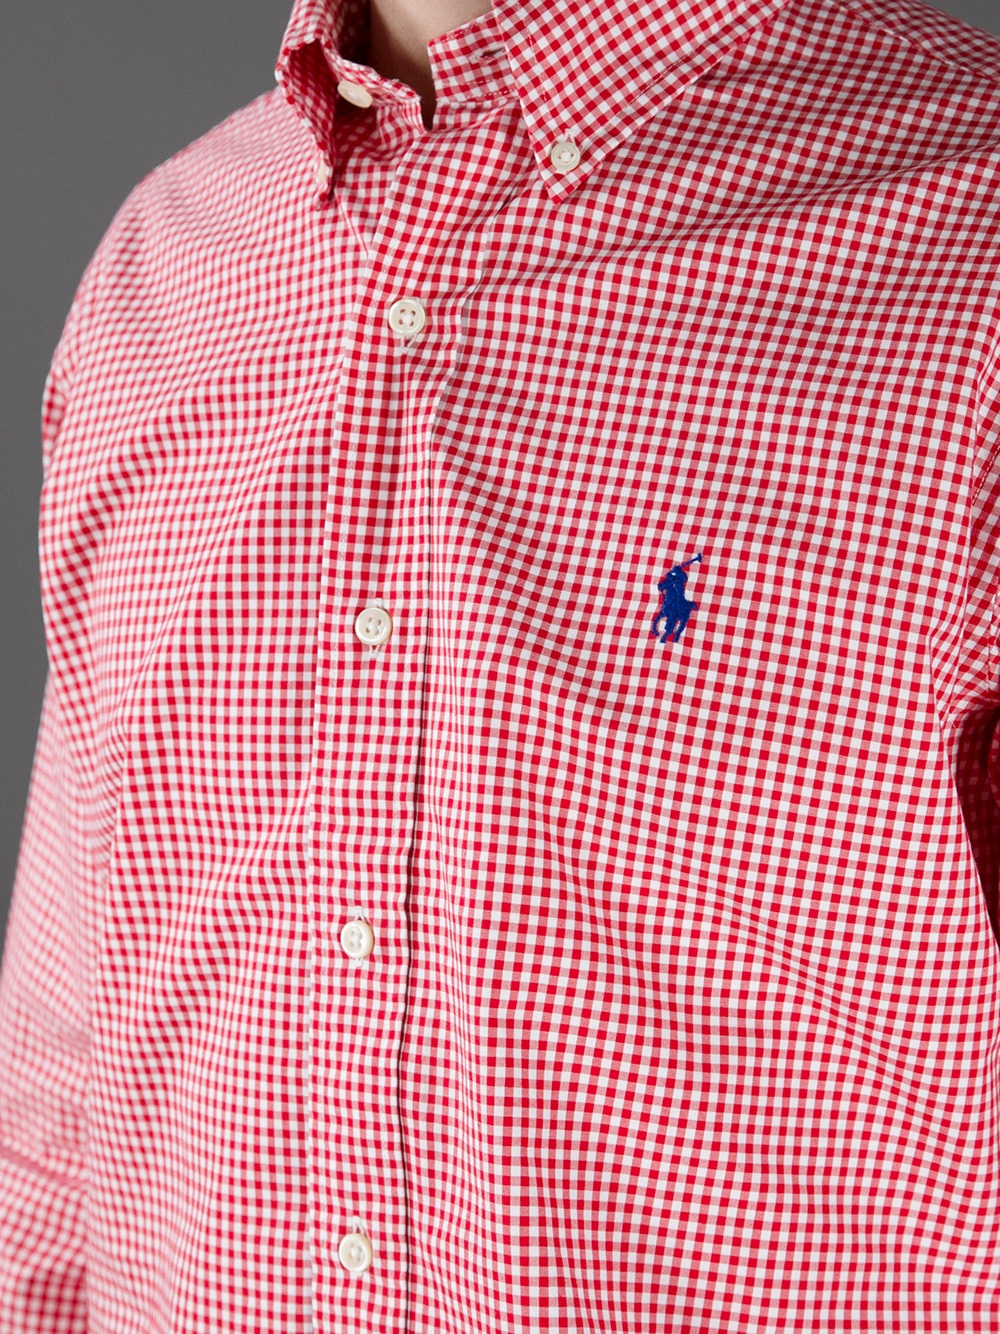 U.S. Polo Assn. Boys' Button-Front Shirt - Marled. Sold by Sears. $ $ Il Migliore Men's Wrinkle Resistant Short Sleeve Button-Down Oxford Shirt. Sold by The Deal Rack White Mark Women's Red Floral Lacy Button-Down Shirt. Sold by Sears. $ - $ $ - $